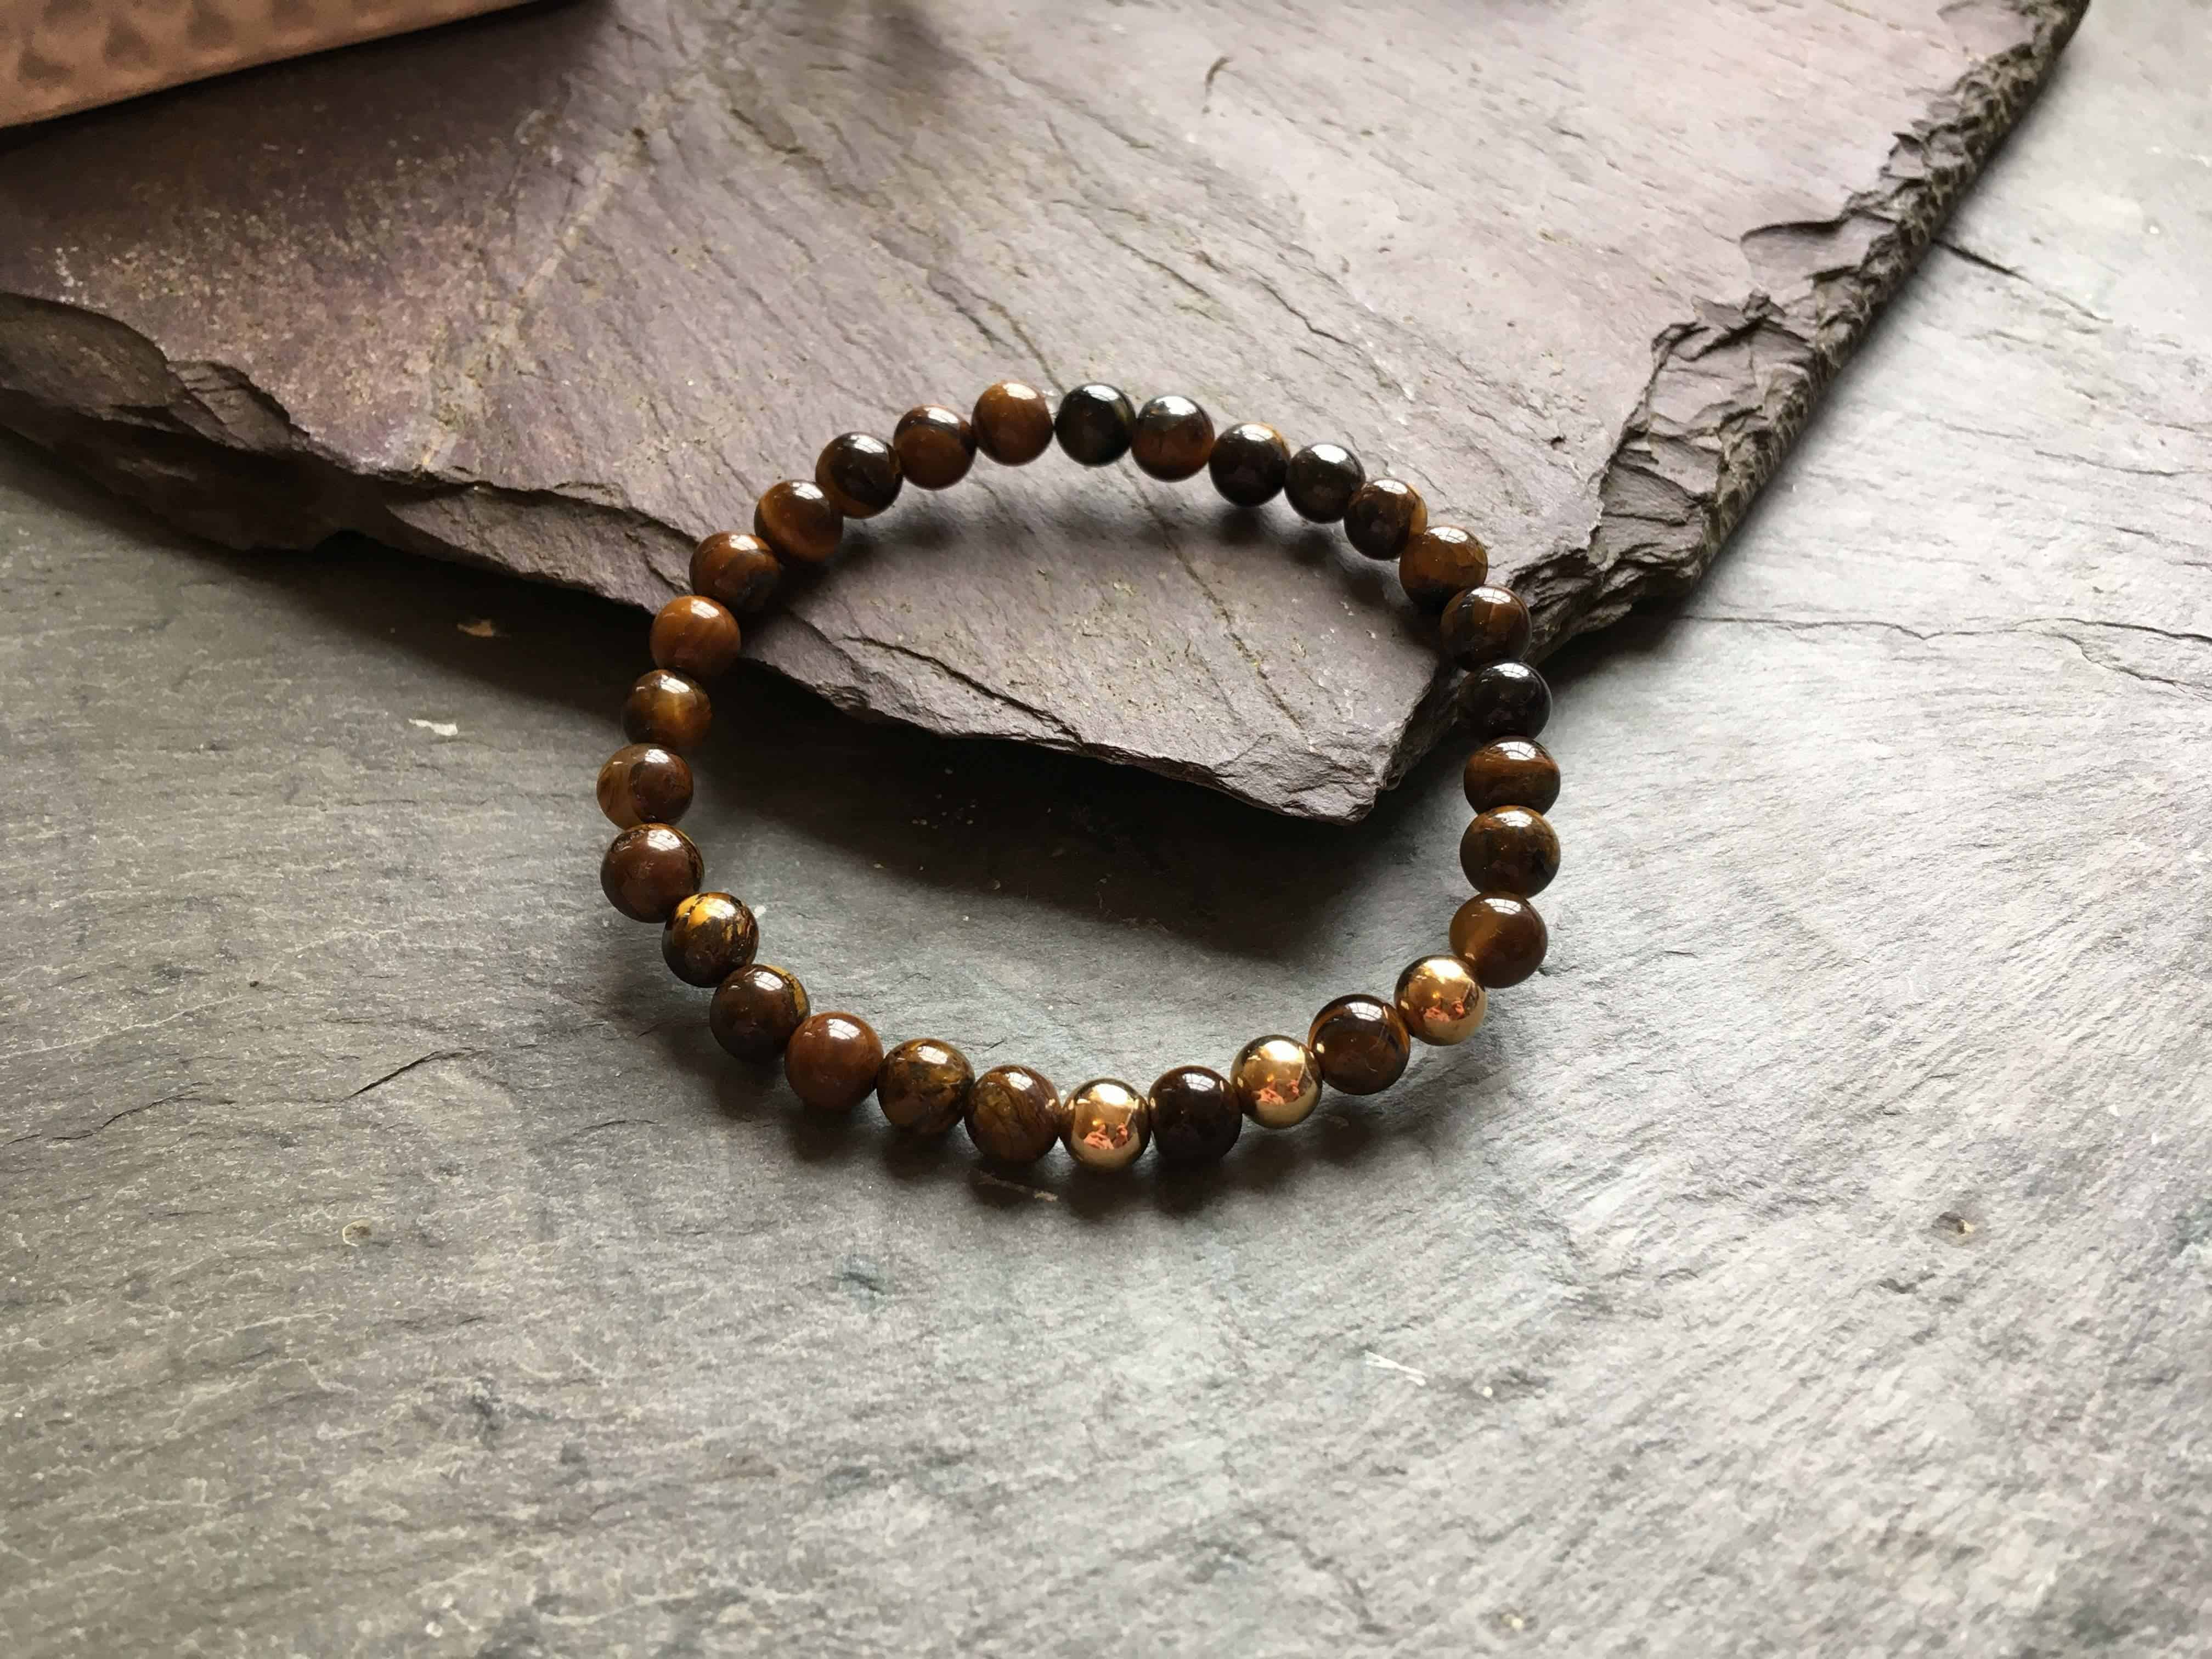 6mm Tigers Eye and Rose Gold Coloured Bead Bracelet.